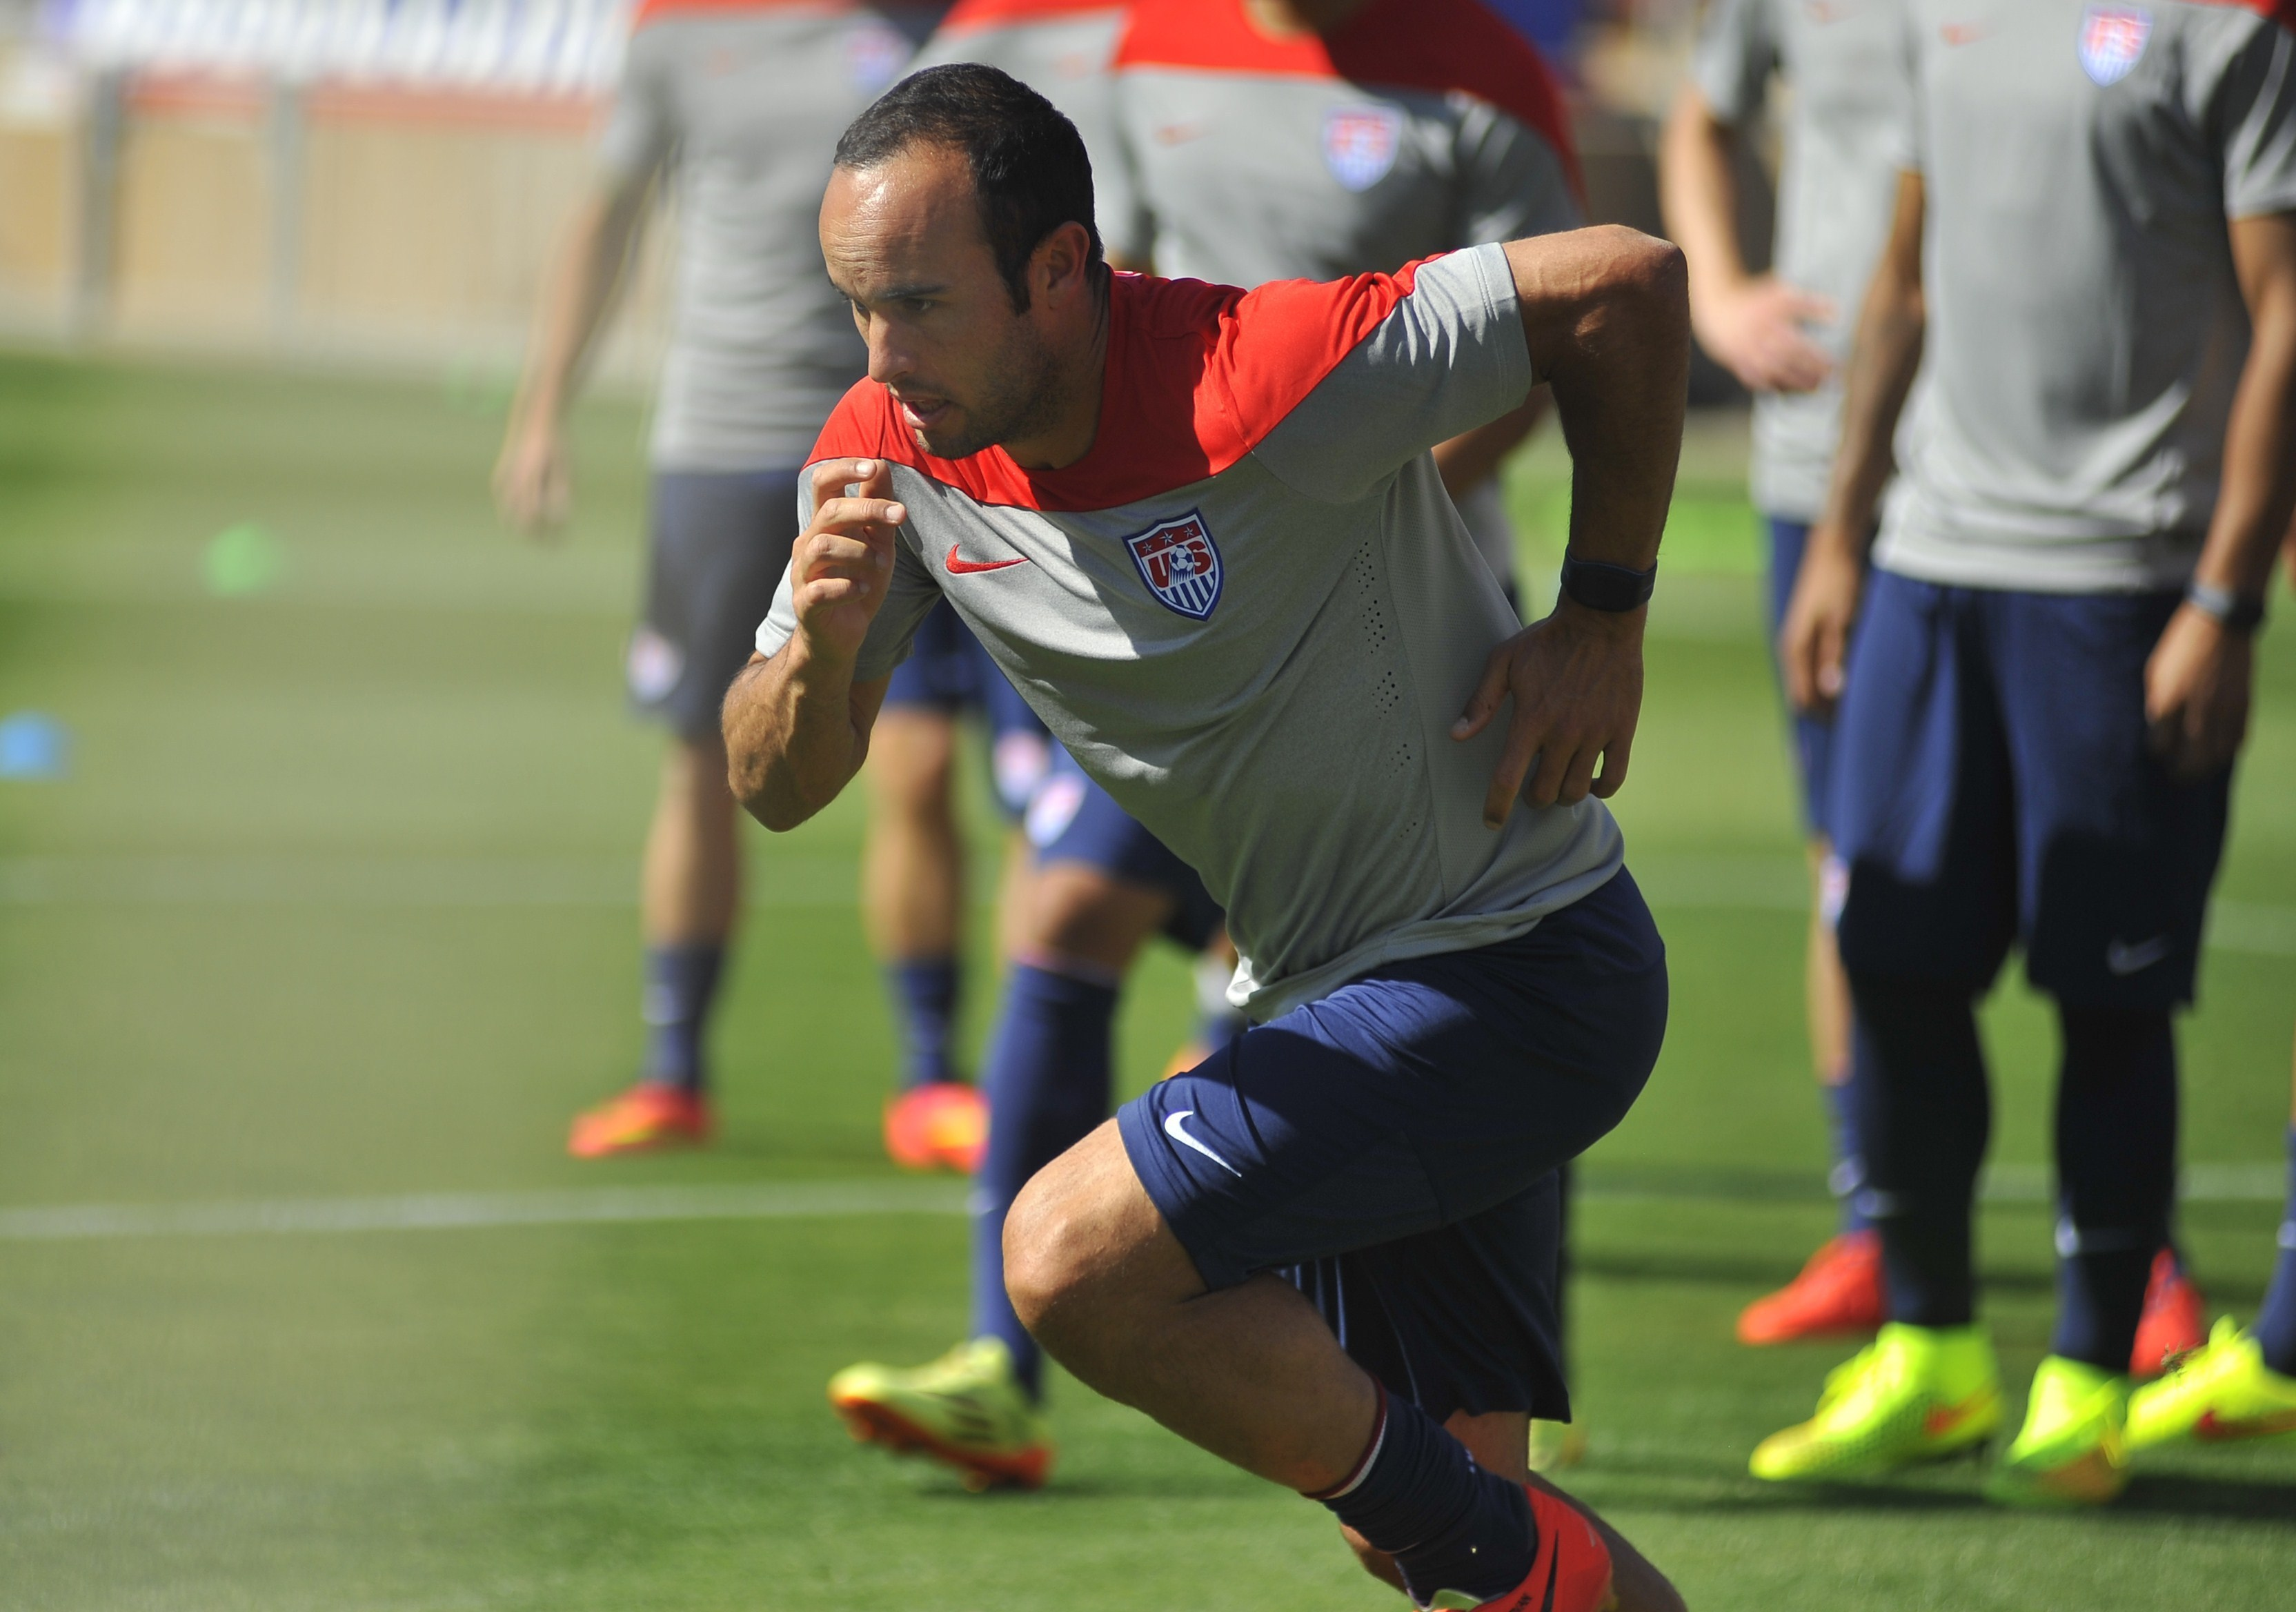 Landon Donovan practices with the U.S. Men's National Team in Stanford, Calif., last week. U.S. Soccer announced Thursday he had not made the roster for the 2014 World Cup in Brazil.